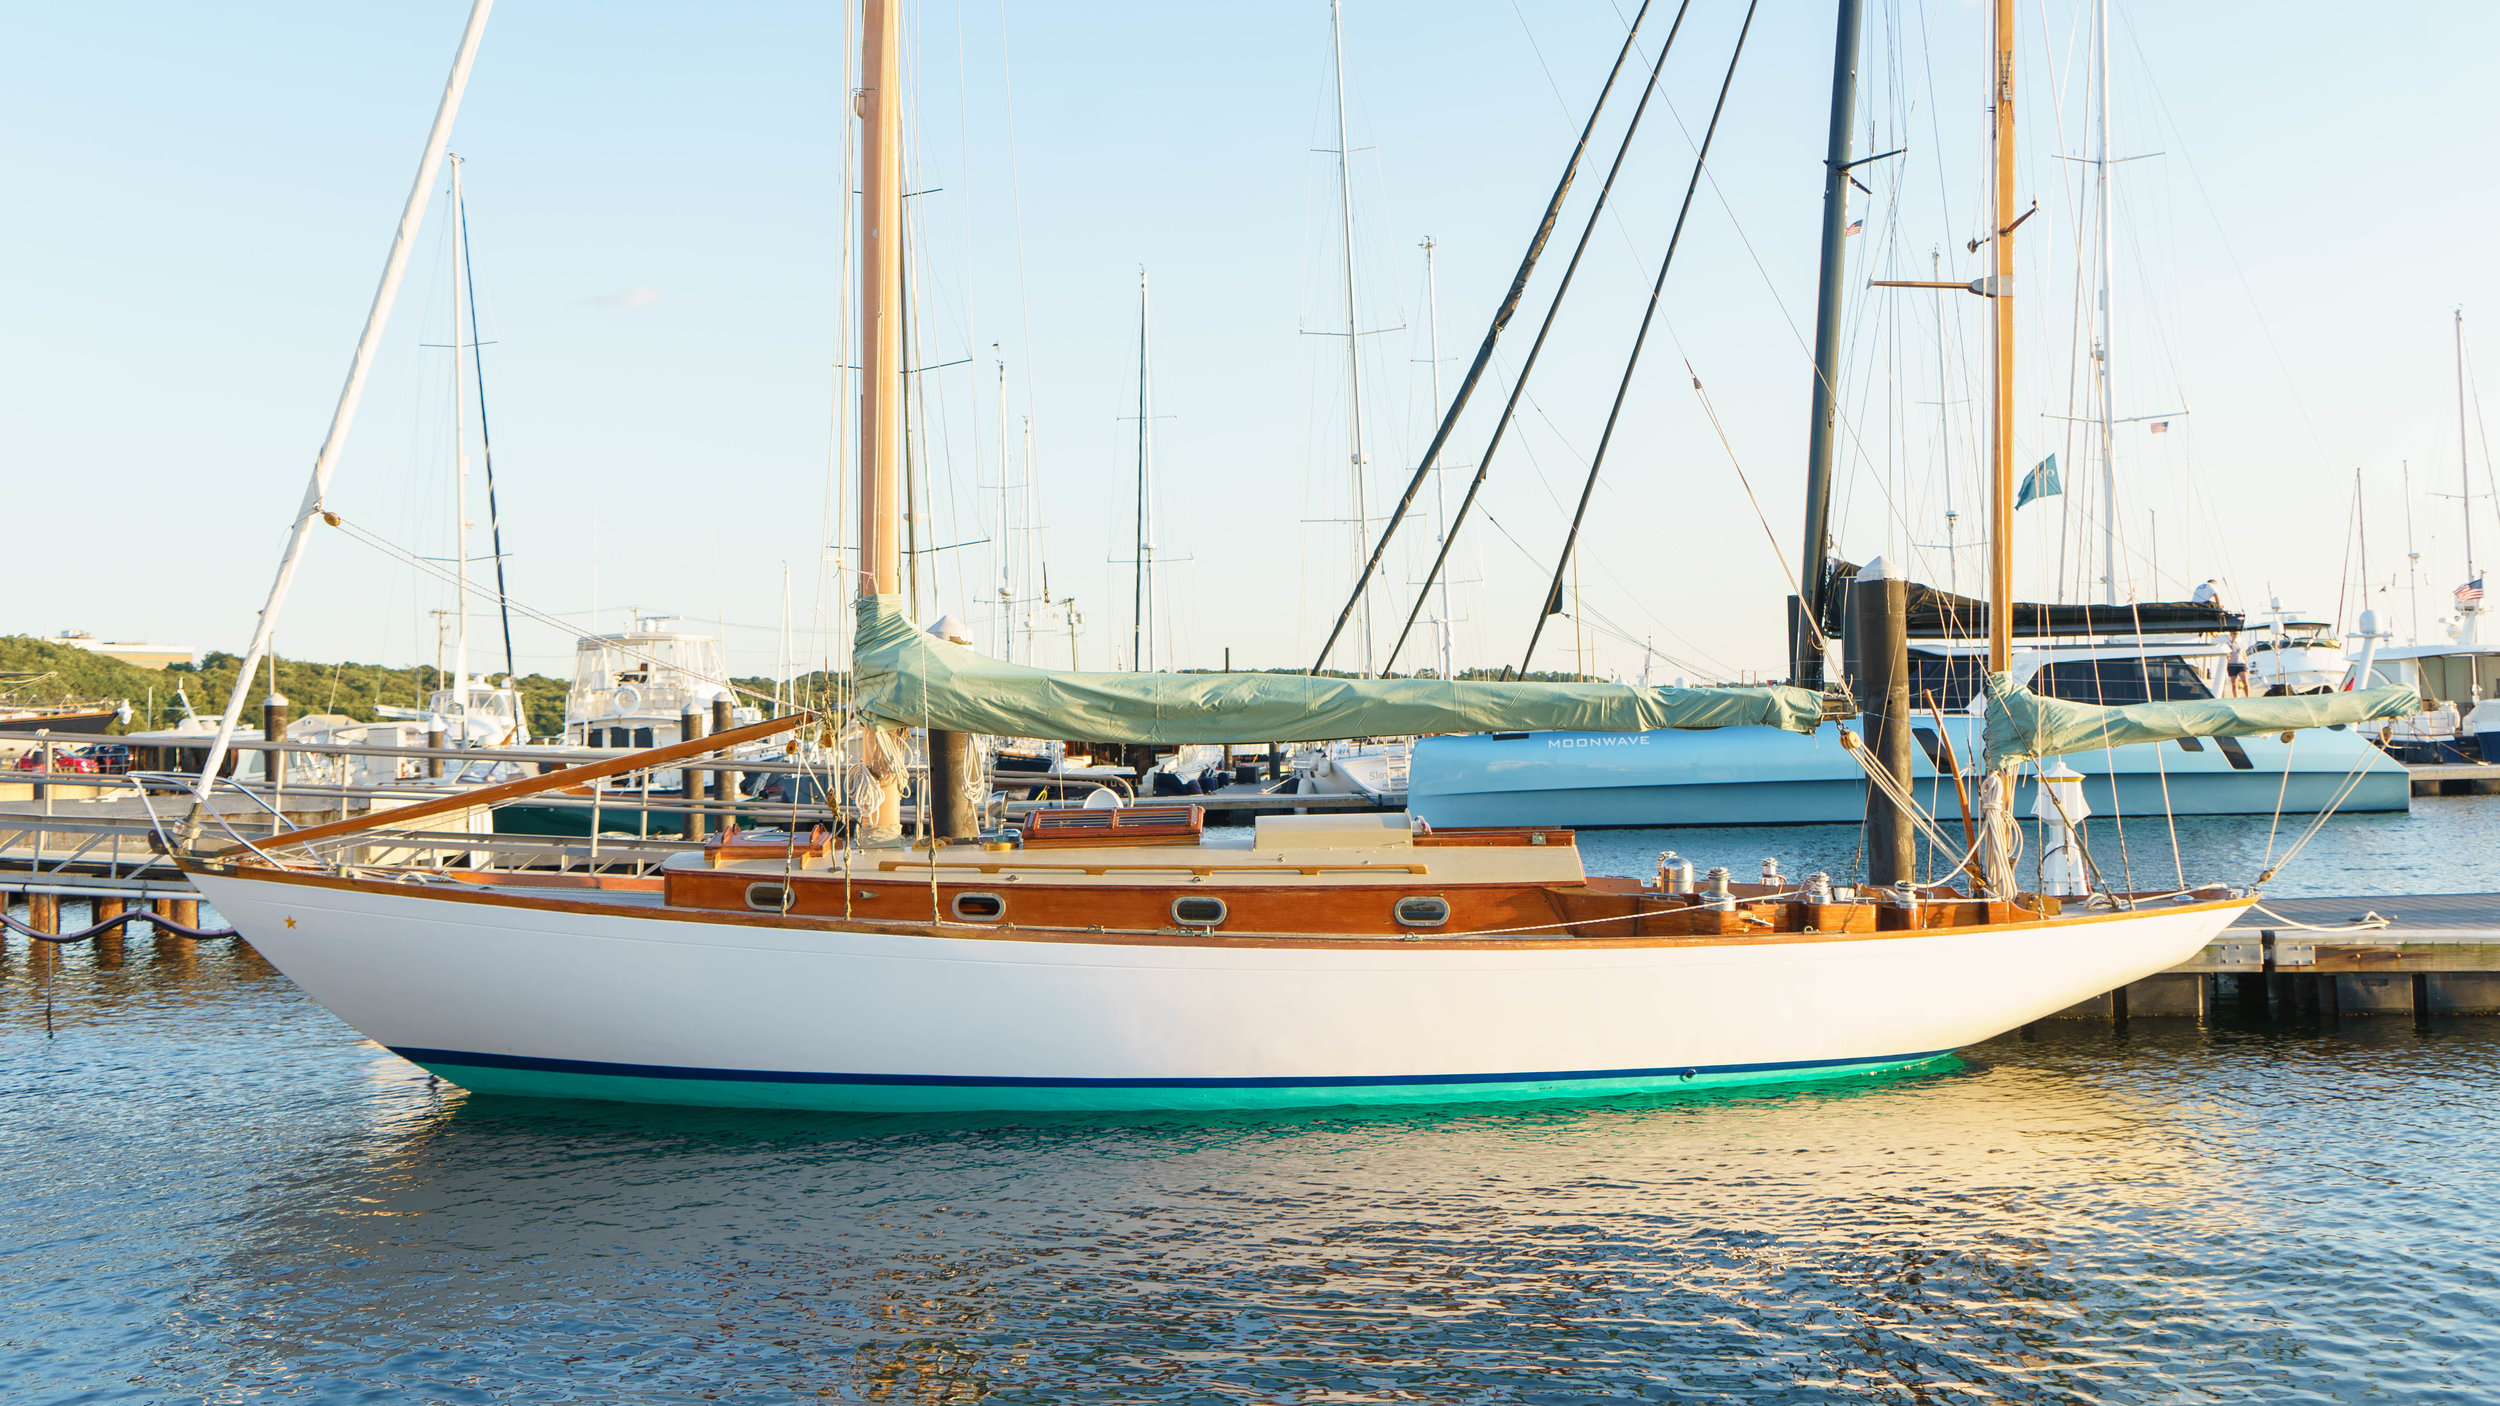 Mr. Badger & Co. - Sailing Charters Newport and Jamestown